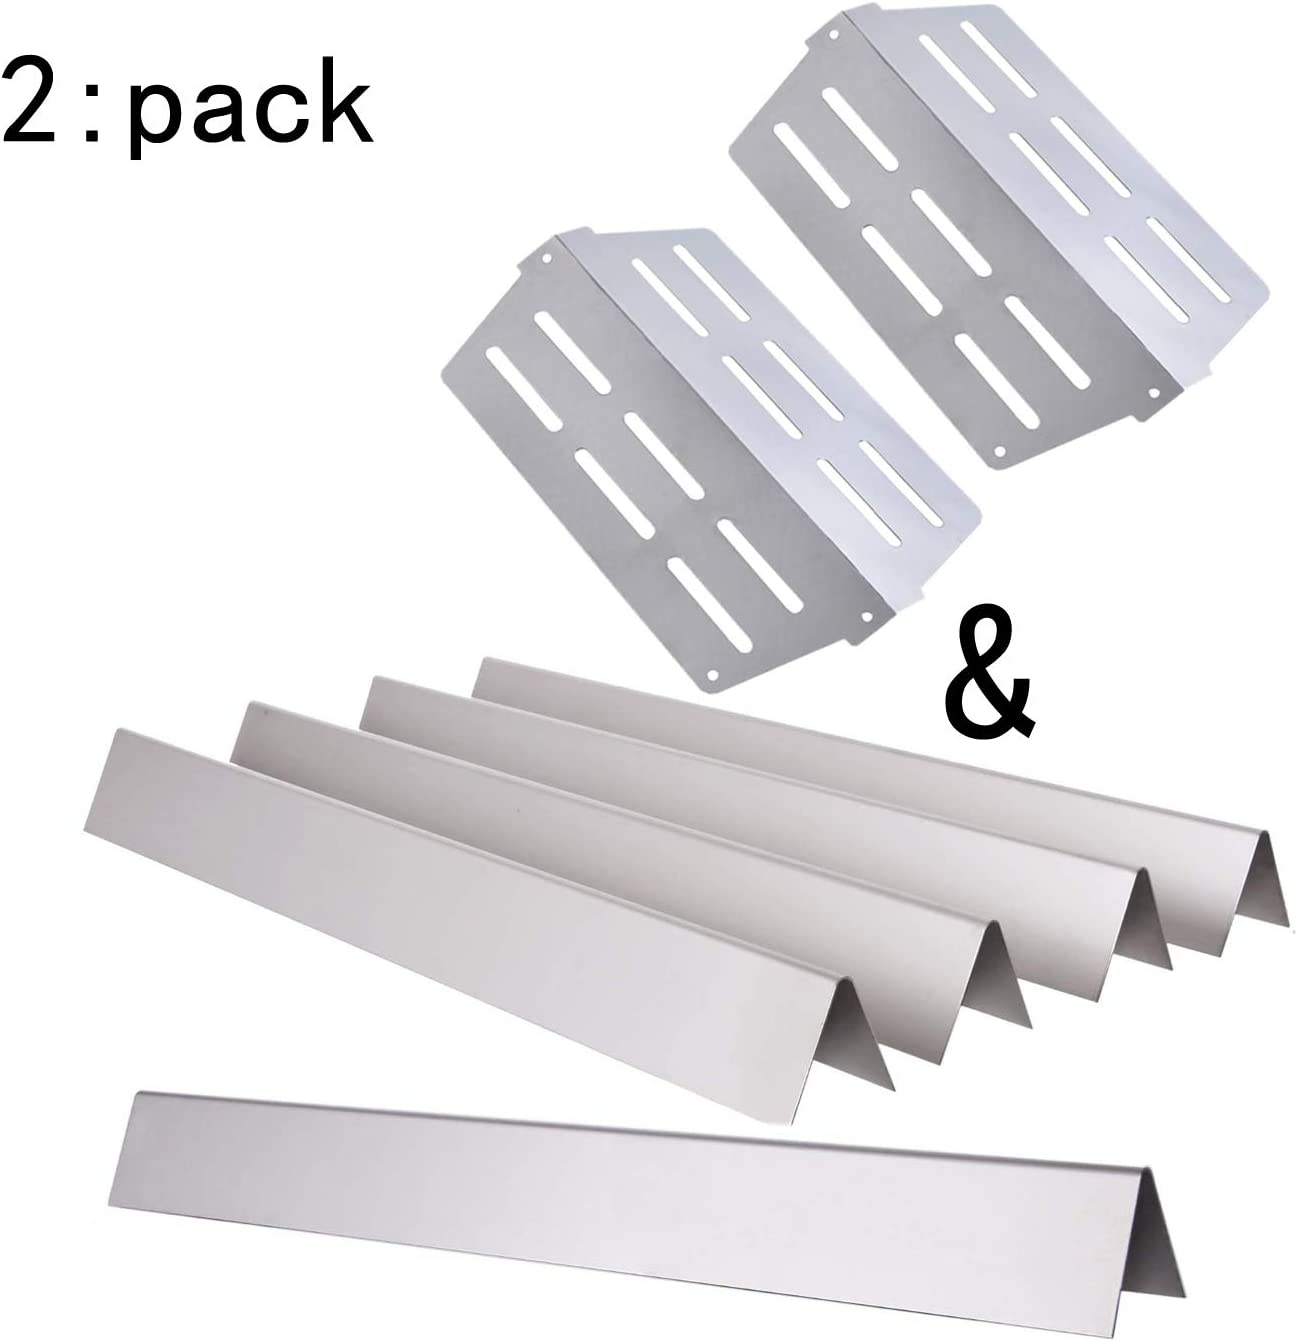 """GasSaf Set of 5 Stainless Steel Flavorizer Bars Replacement for Weber Genesis 300, E310, S310, E330, EP310, EP320, EP330, S310, S330 Series Grill(17.5"""" x 2.25"""" x 2.375"""") : Garden & Outdoor"""